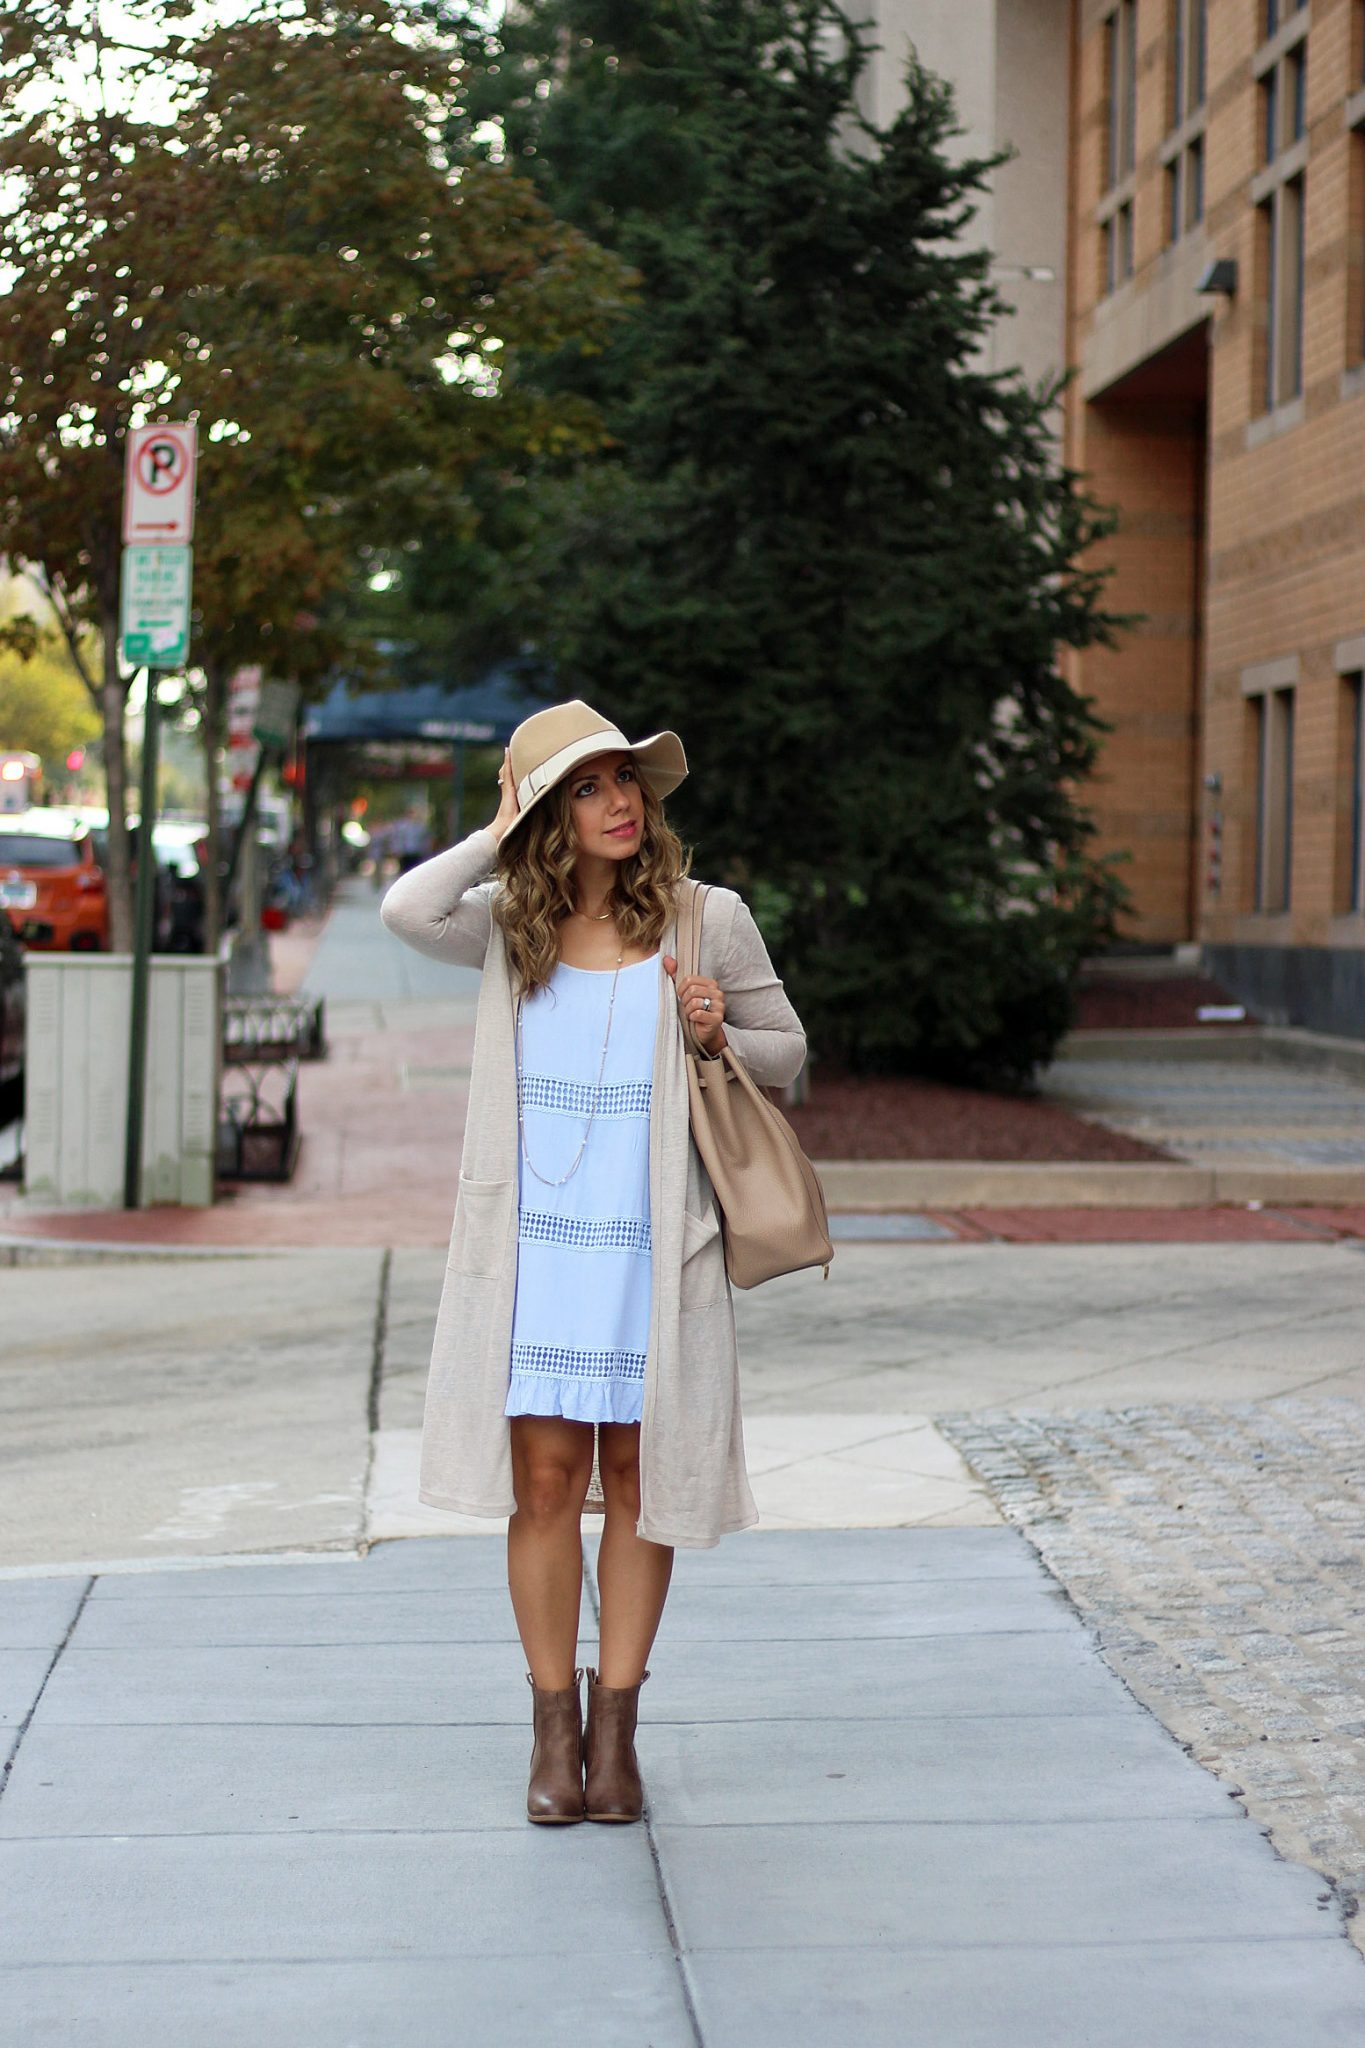 Blue Shift Re-styled for Fall & A Note on Tourists